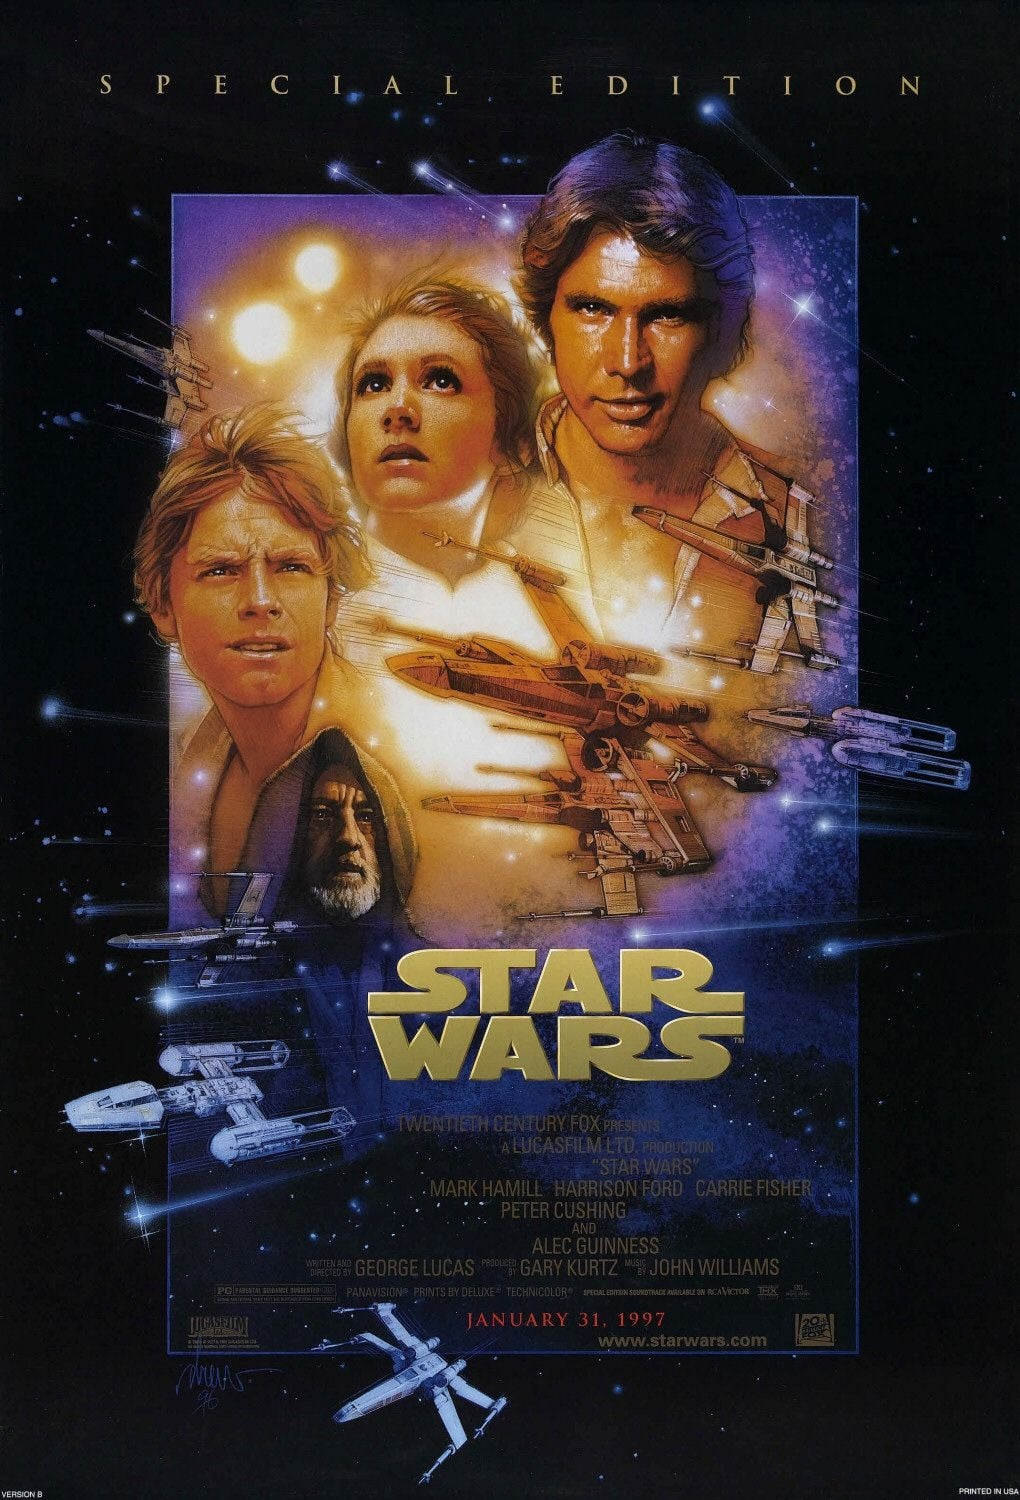 Star Wars: Episode IV - A New Hope - Special Edition (1997)